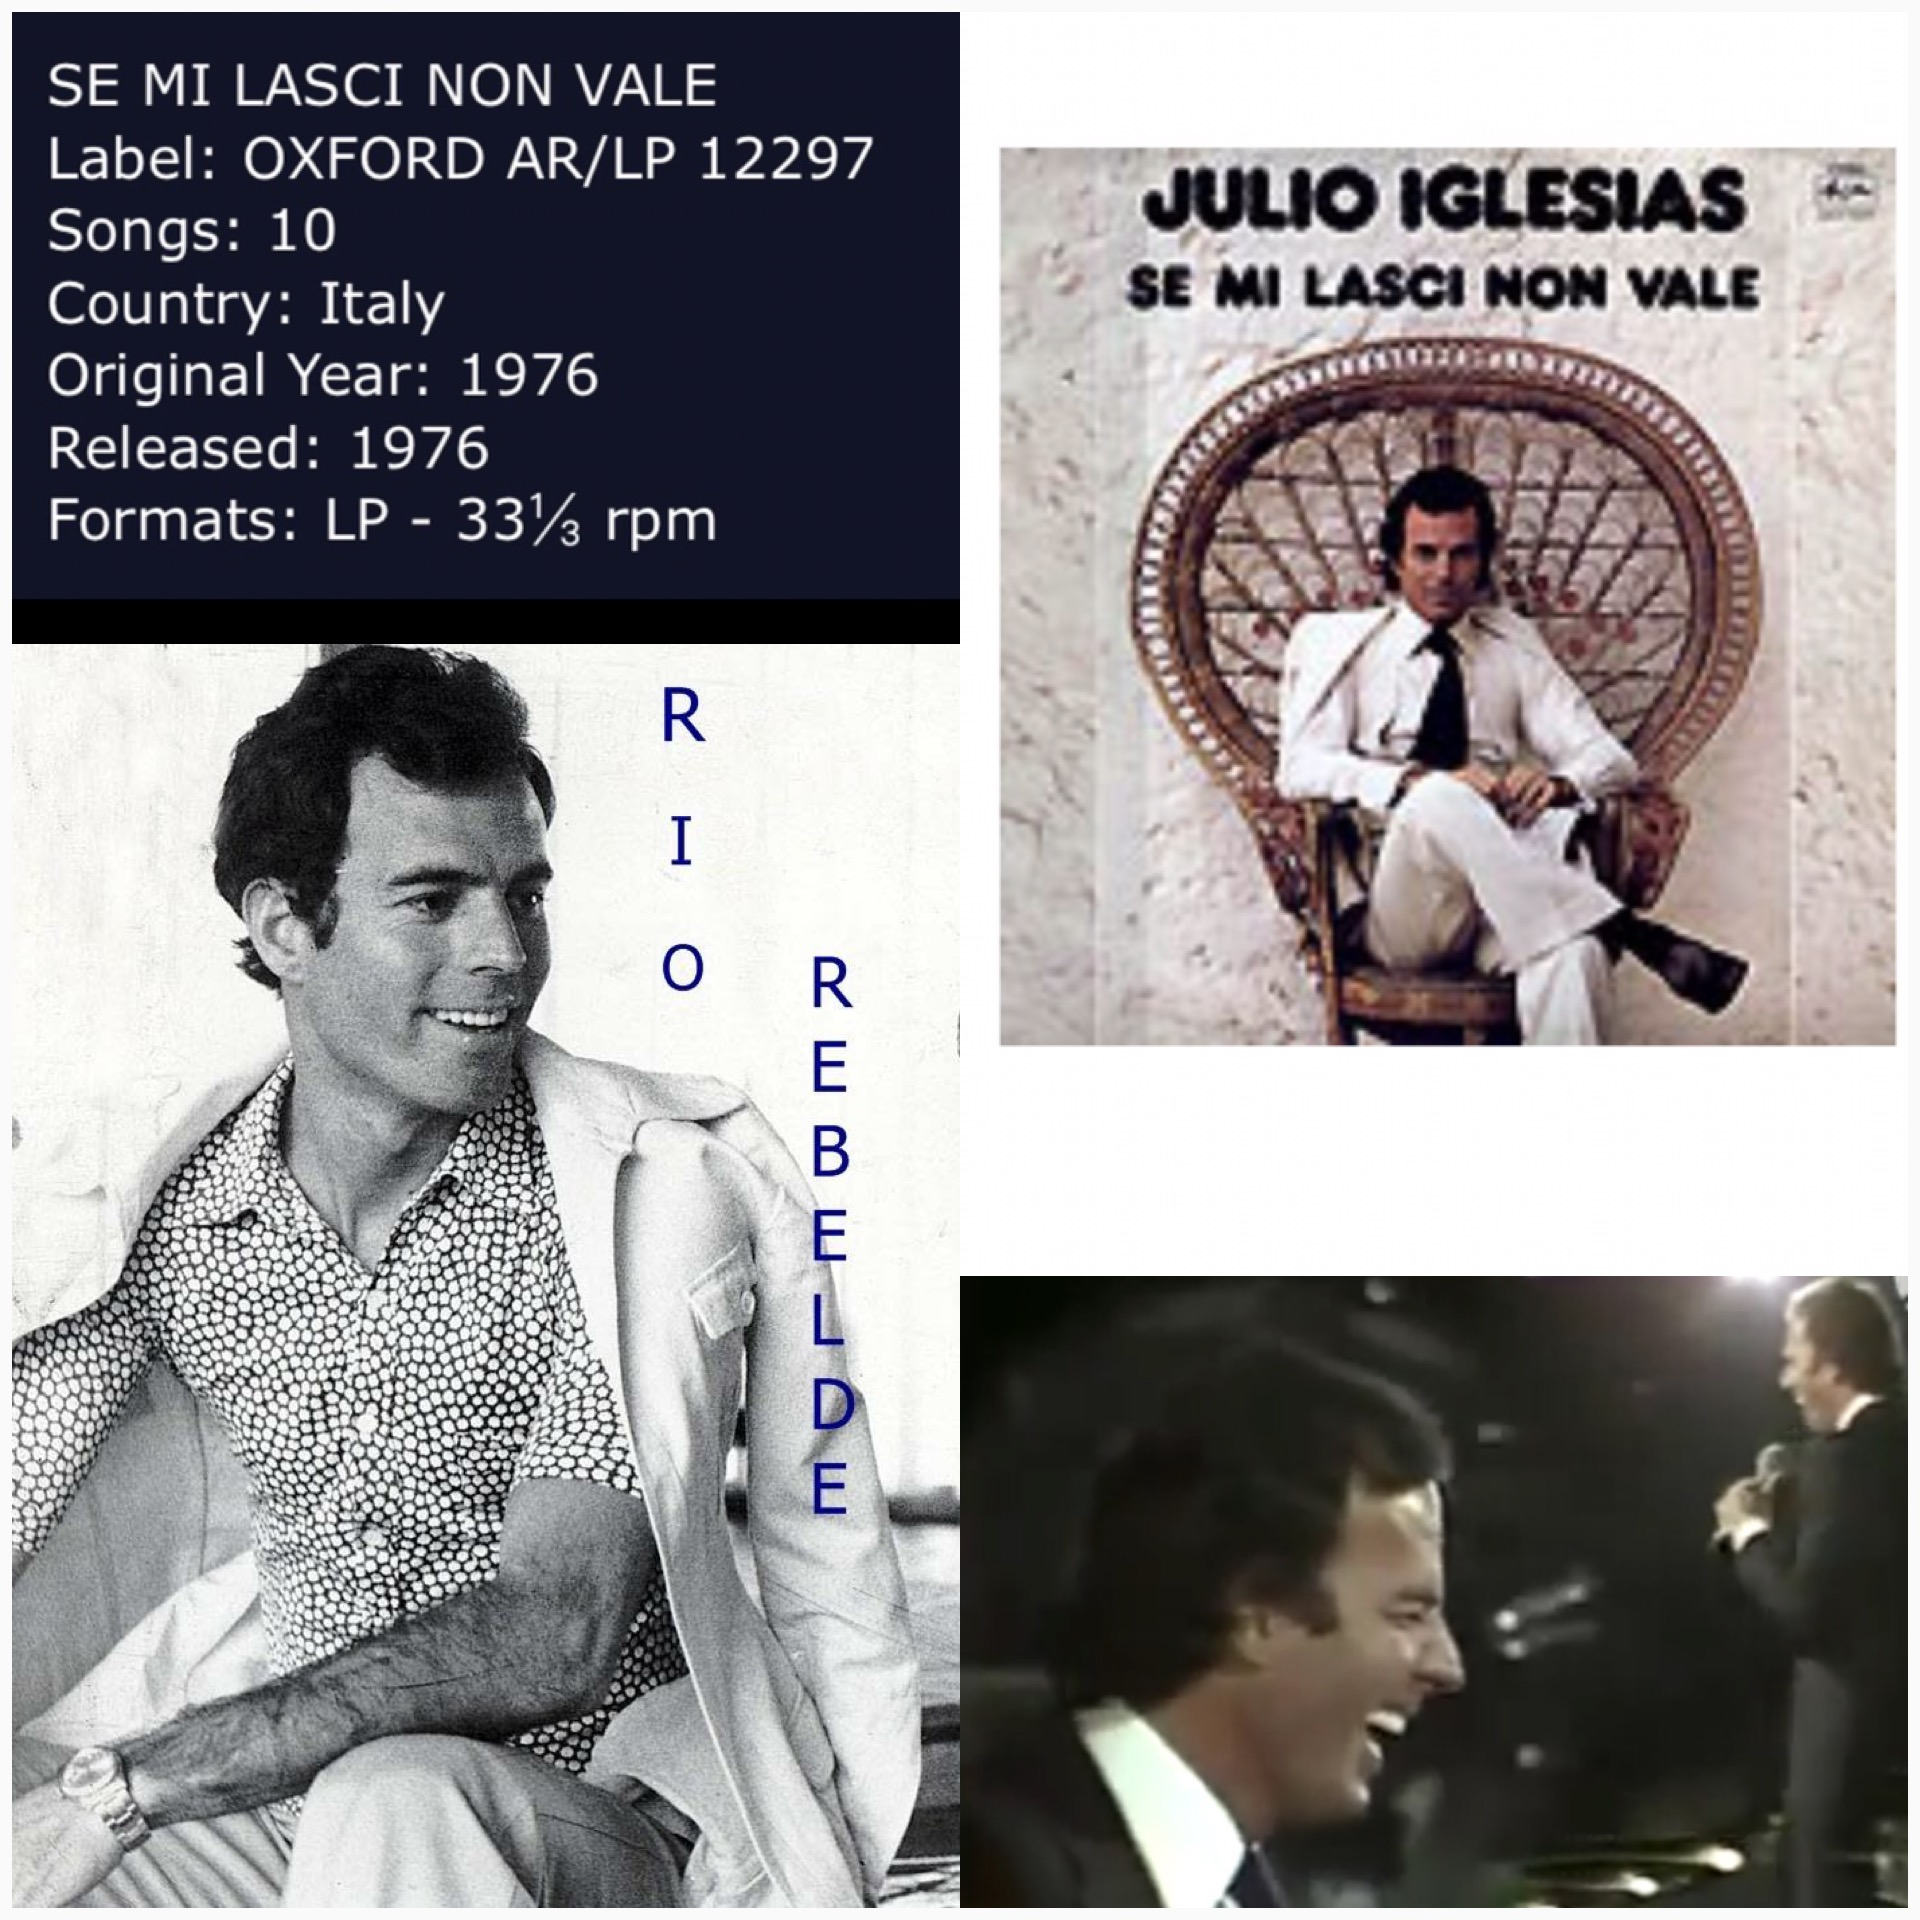 a biography of julio iglesias Enrique iglesias is a spanish singer known for several hit songs, including bailamos, rhythm divine, be with you, escape and hero he is the son of spanish singer julio iglesias.